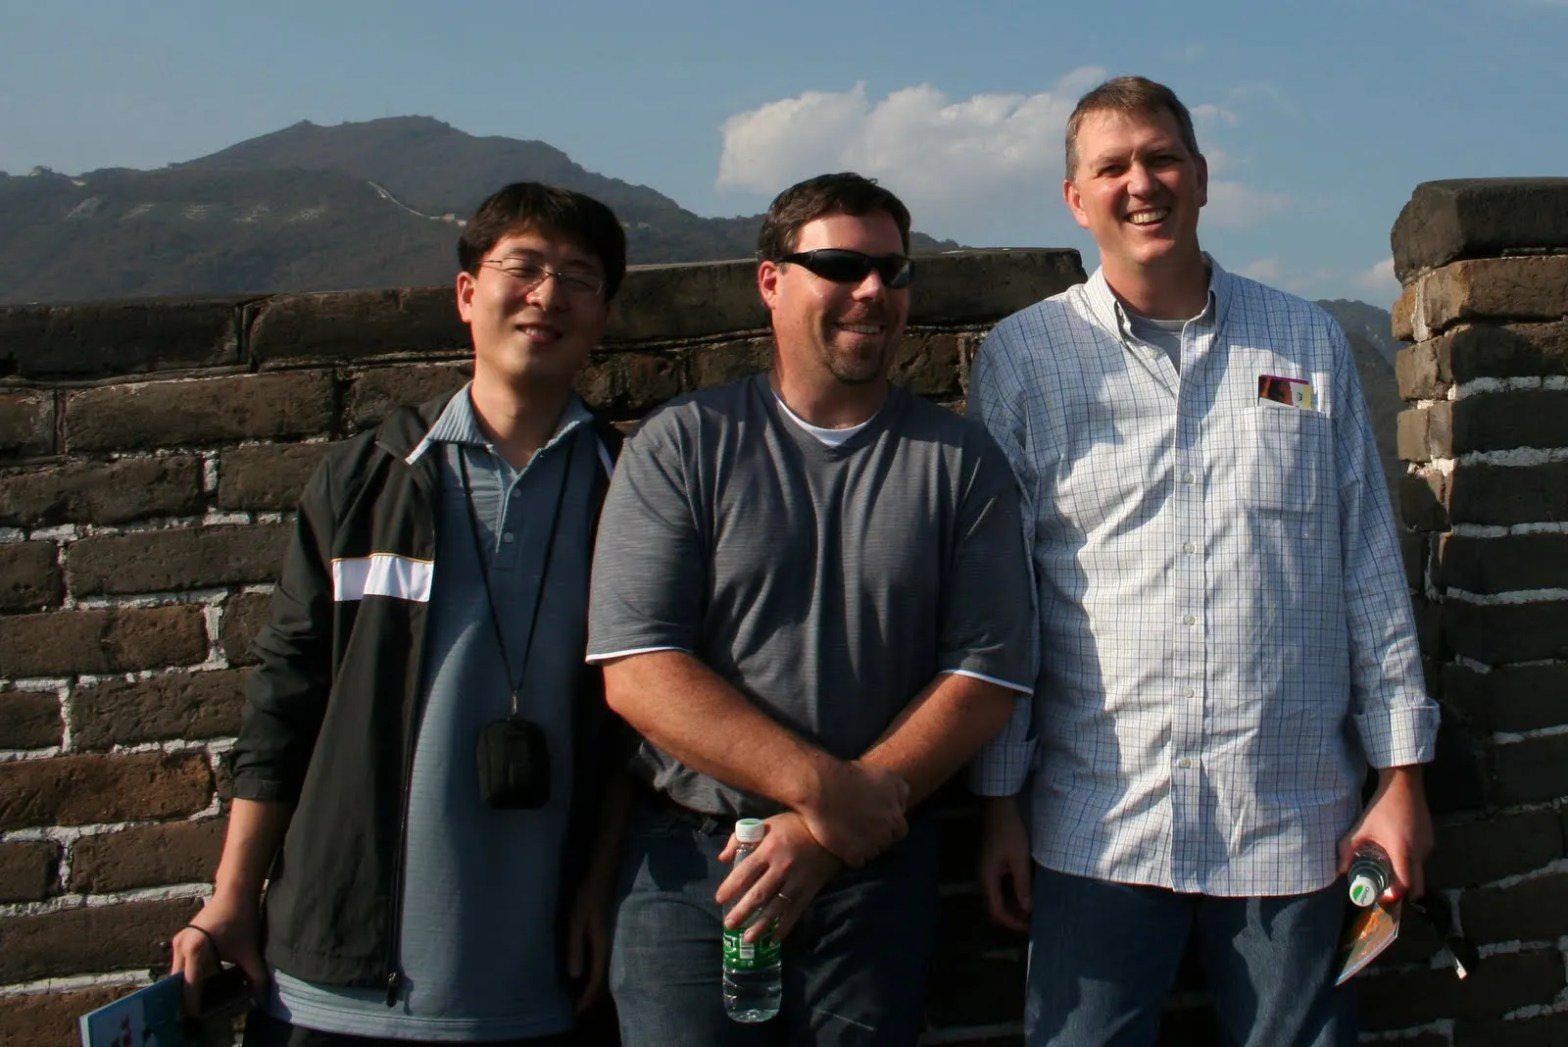 Ground, Kevin, and me on the Great Wall